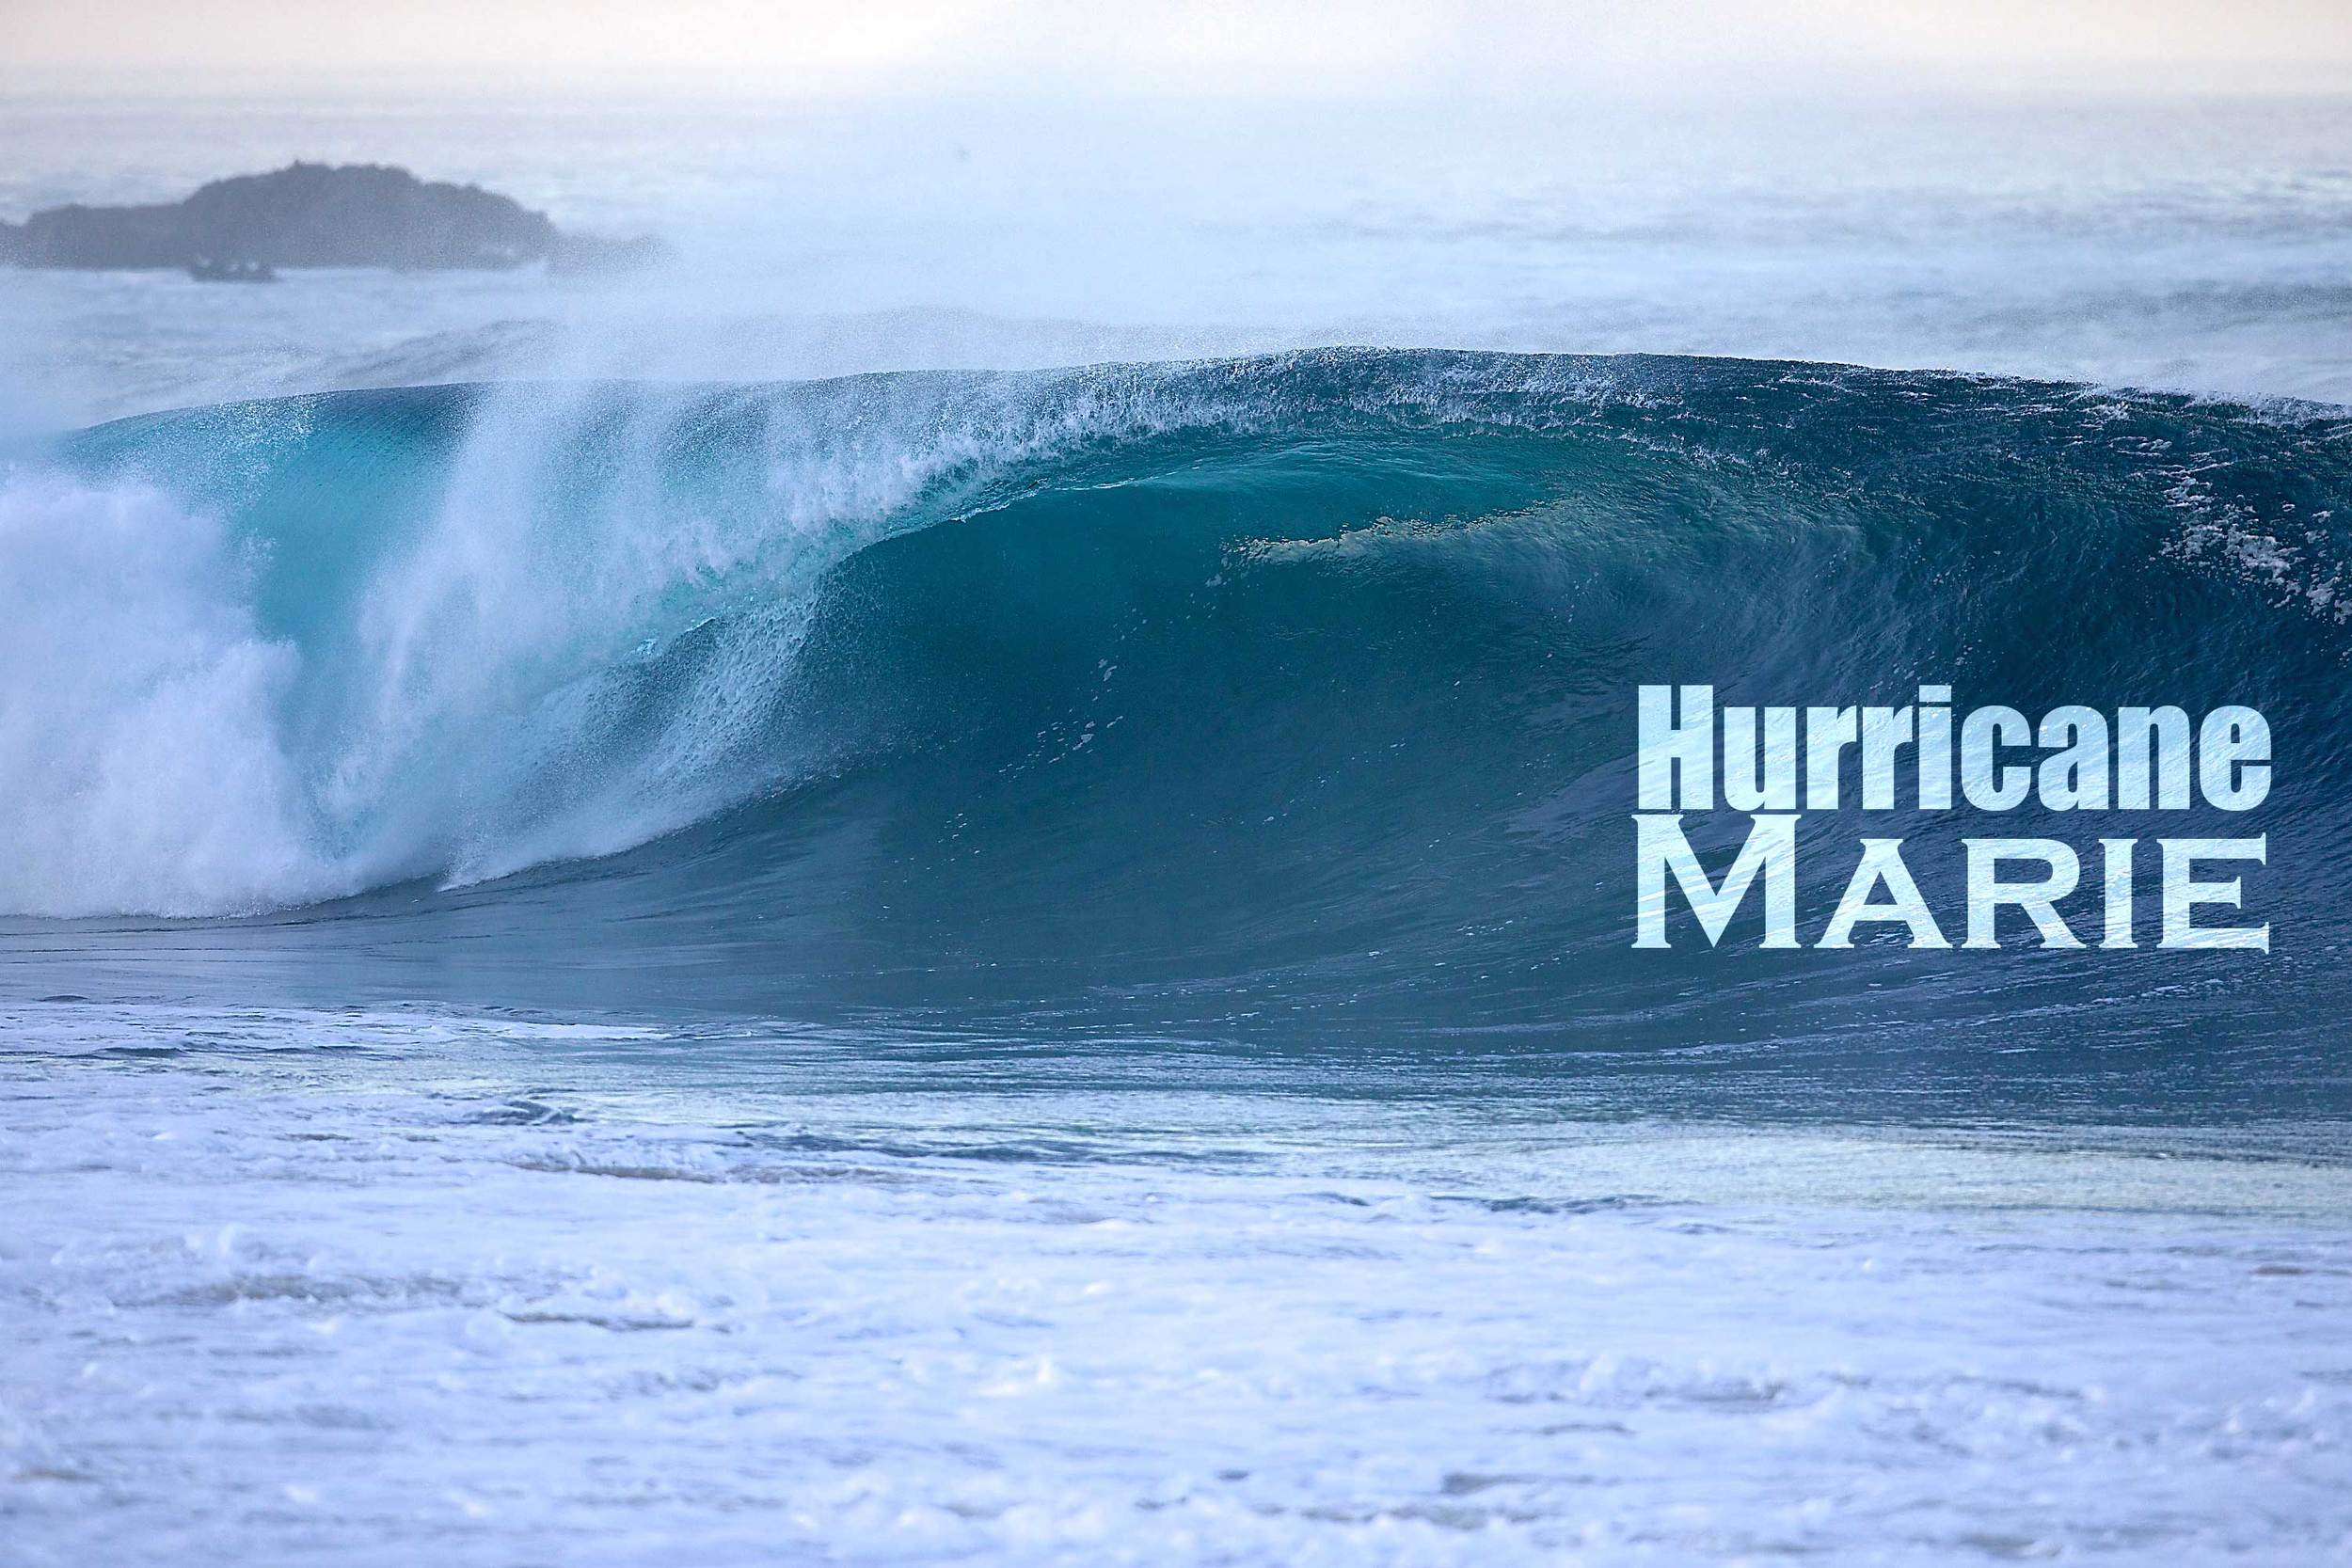 Not for the faint of heart. Hurricane Marie lives up to it's hype.